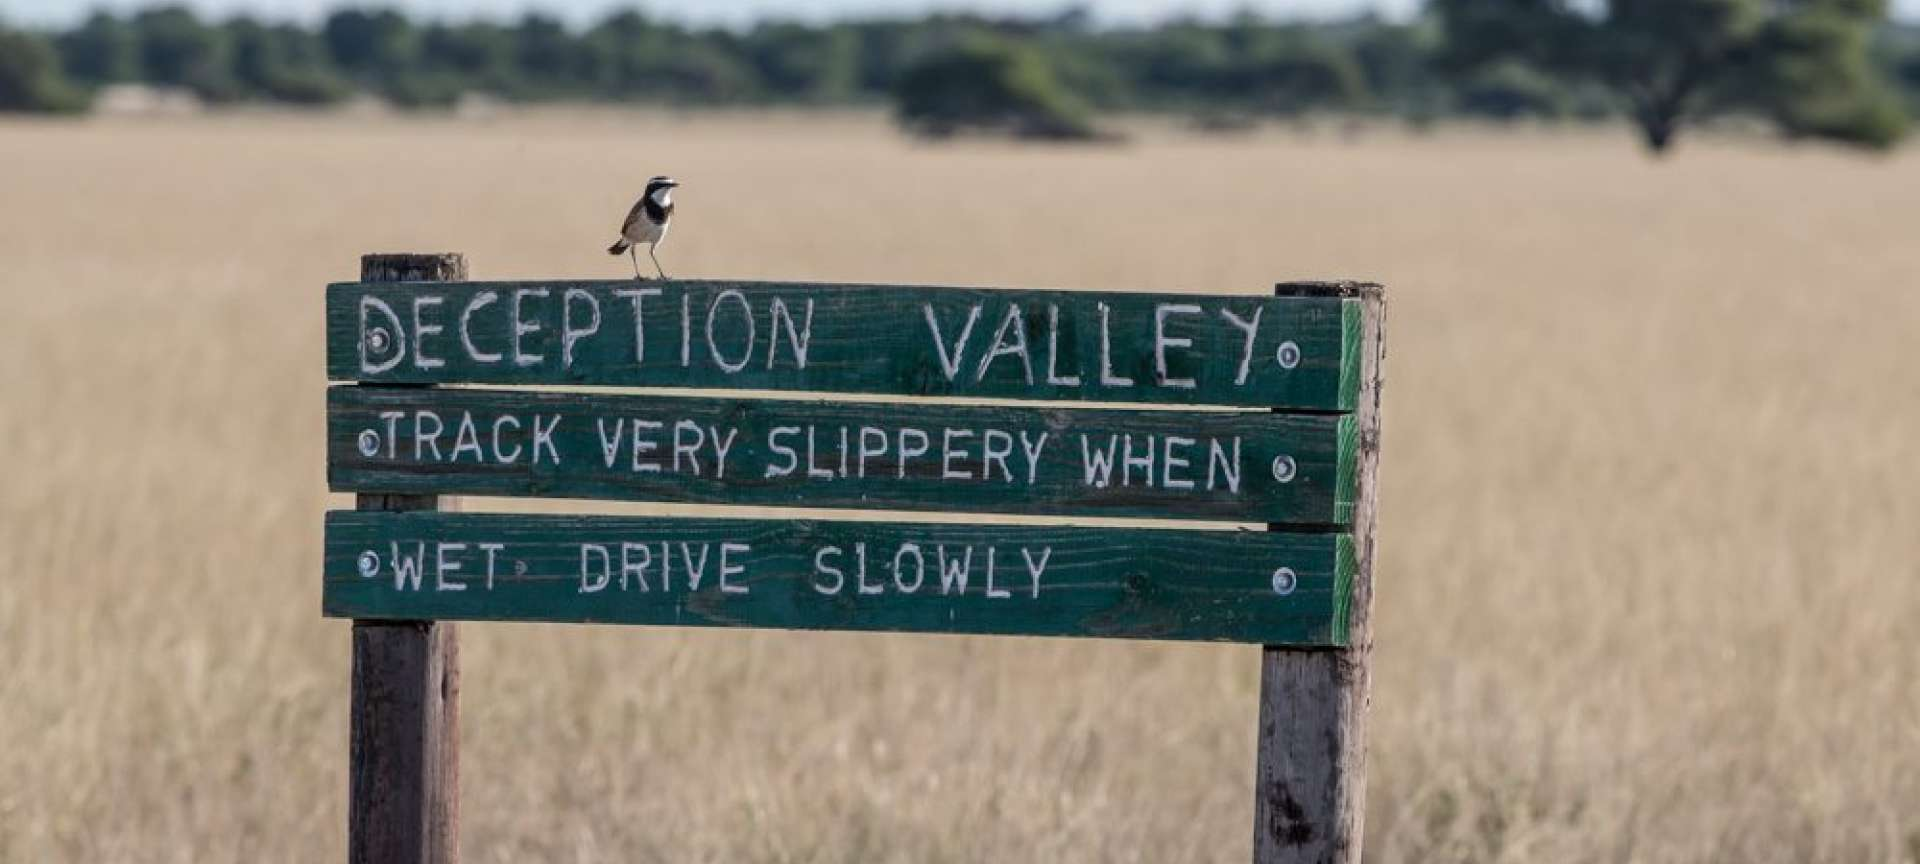 Deception Valley - Africa Wildlife Safaris